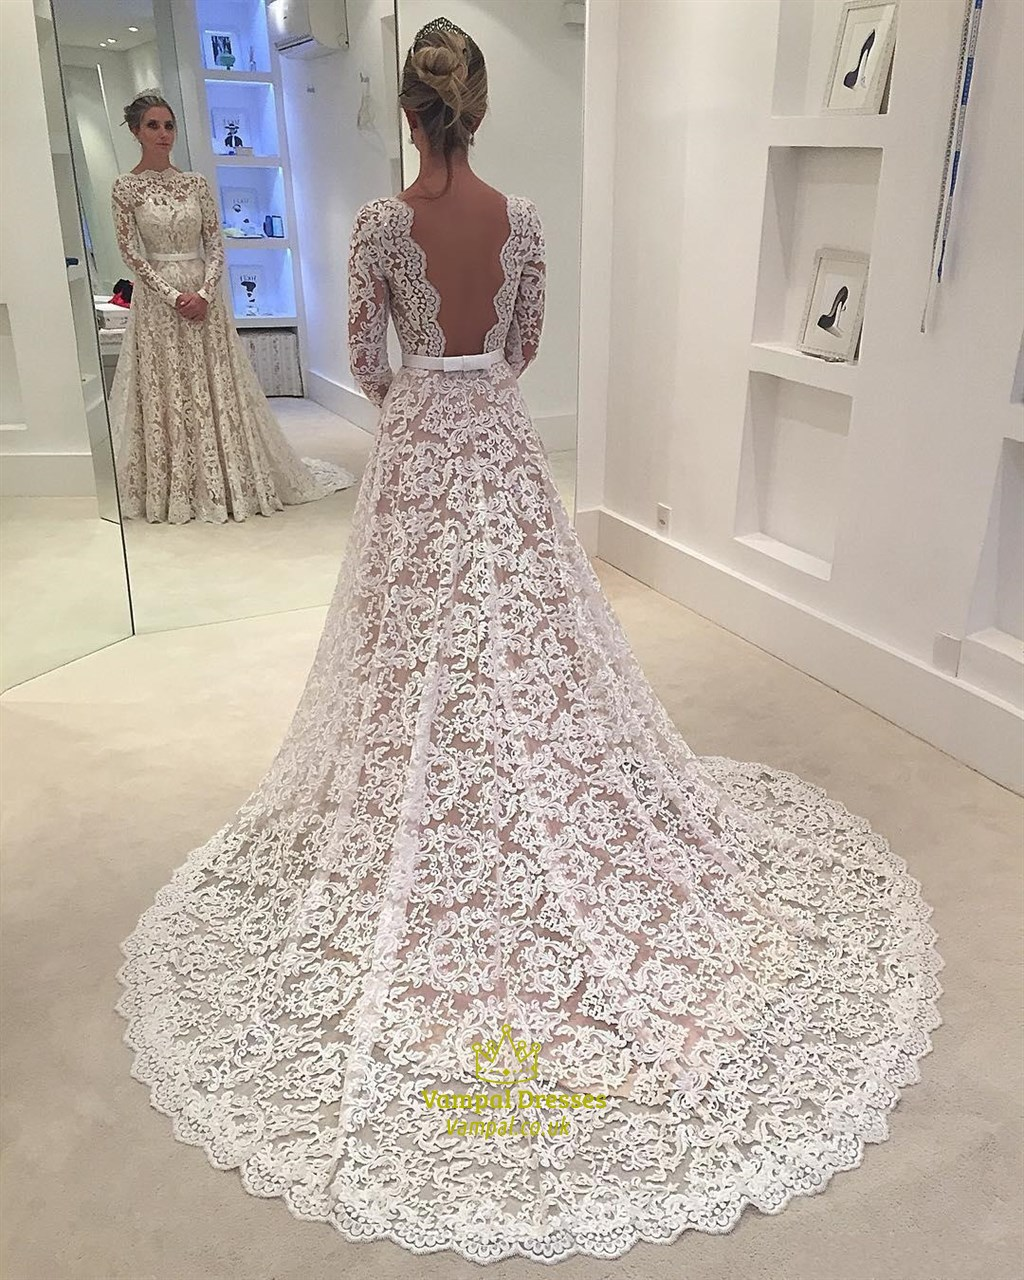 Elegant illusion lace overlay long sleeve wedding dress for Wedding dress lace overlay